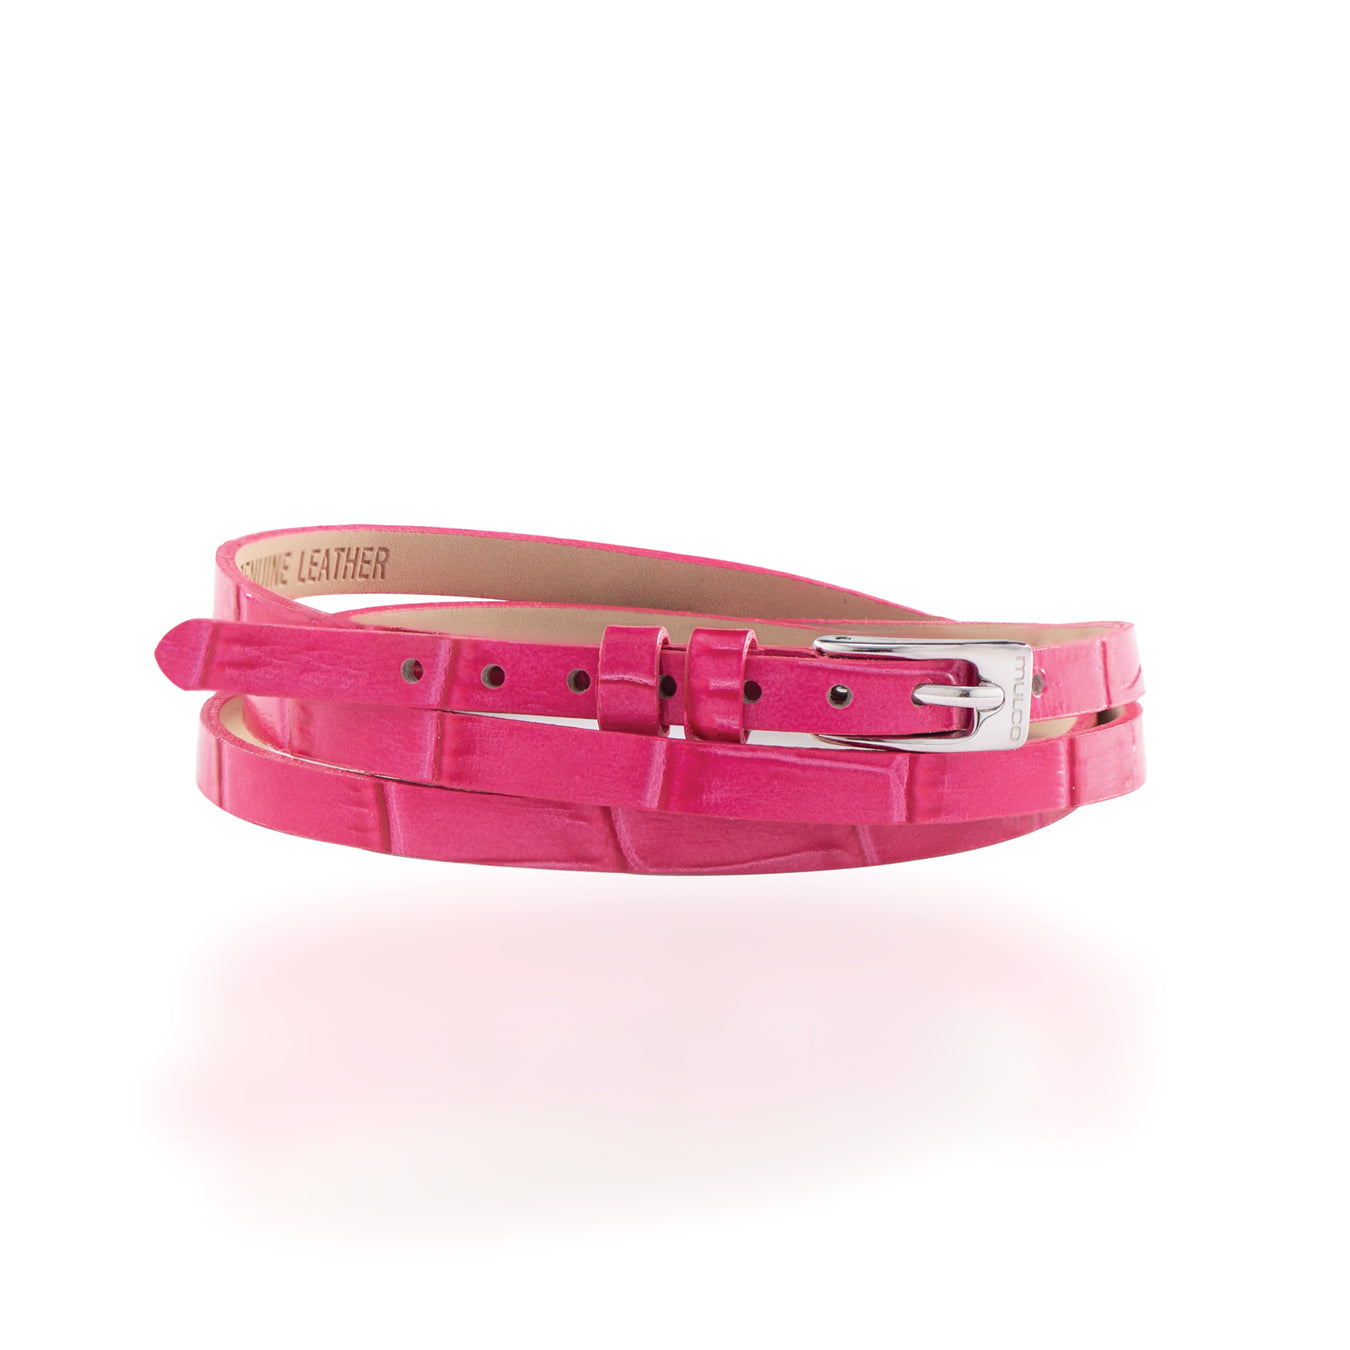 Leather Wrap Bracelet B - Pink-Accessories-Mulco-Watches